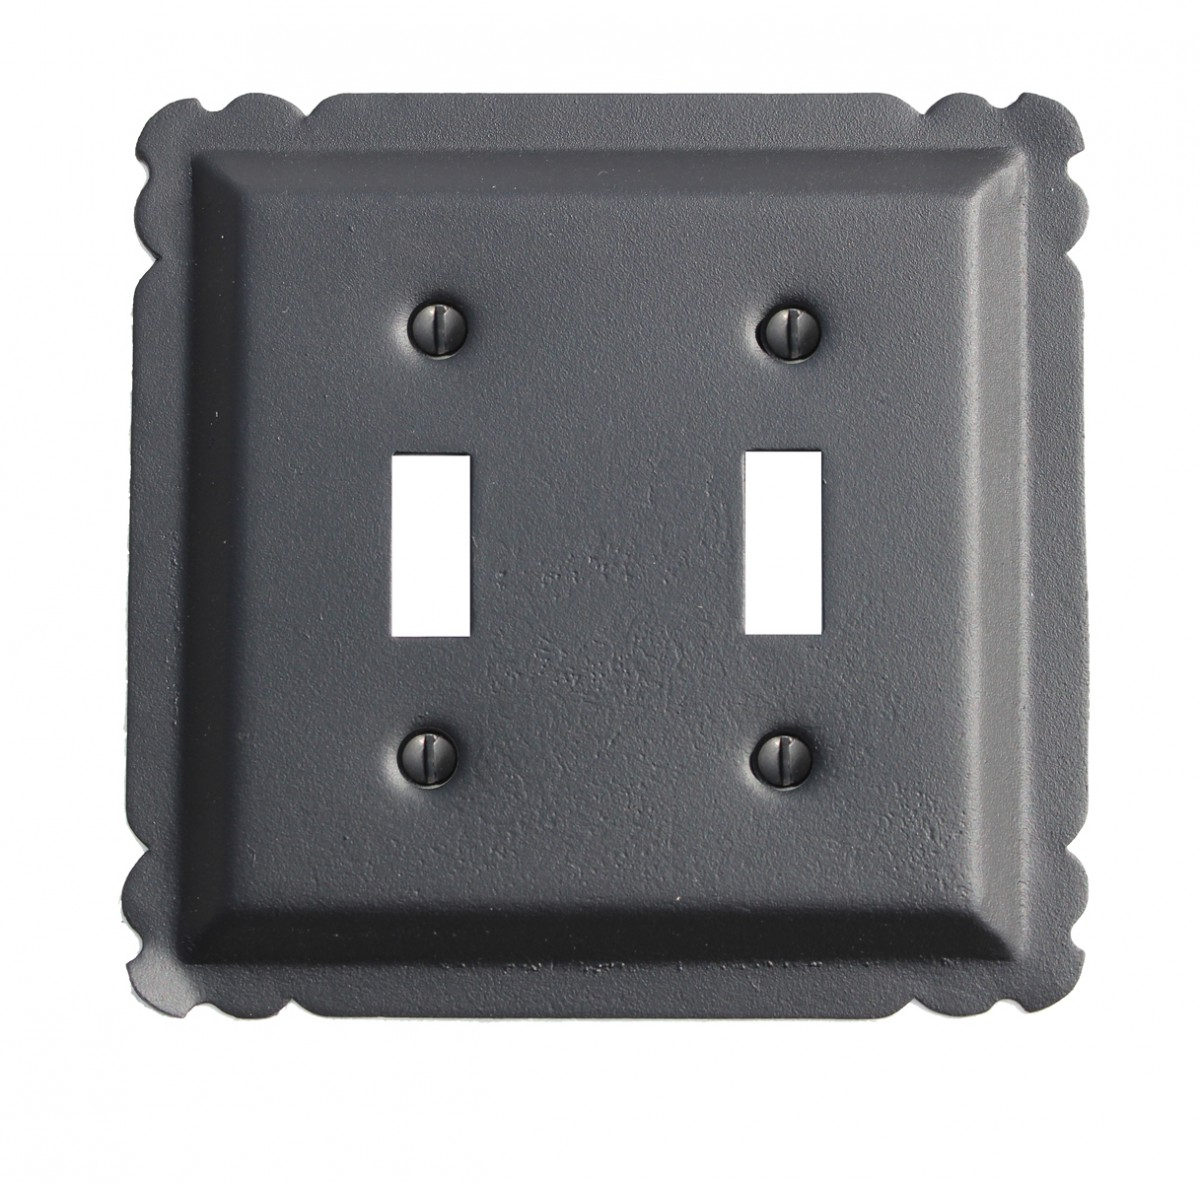 Switchplate Black Steel Double Toggle | Renovator's Supply